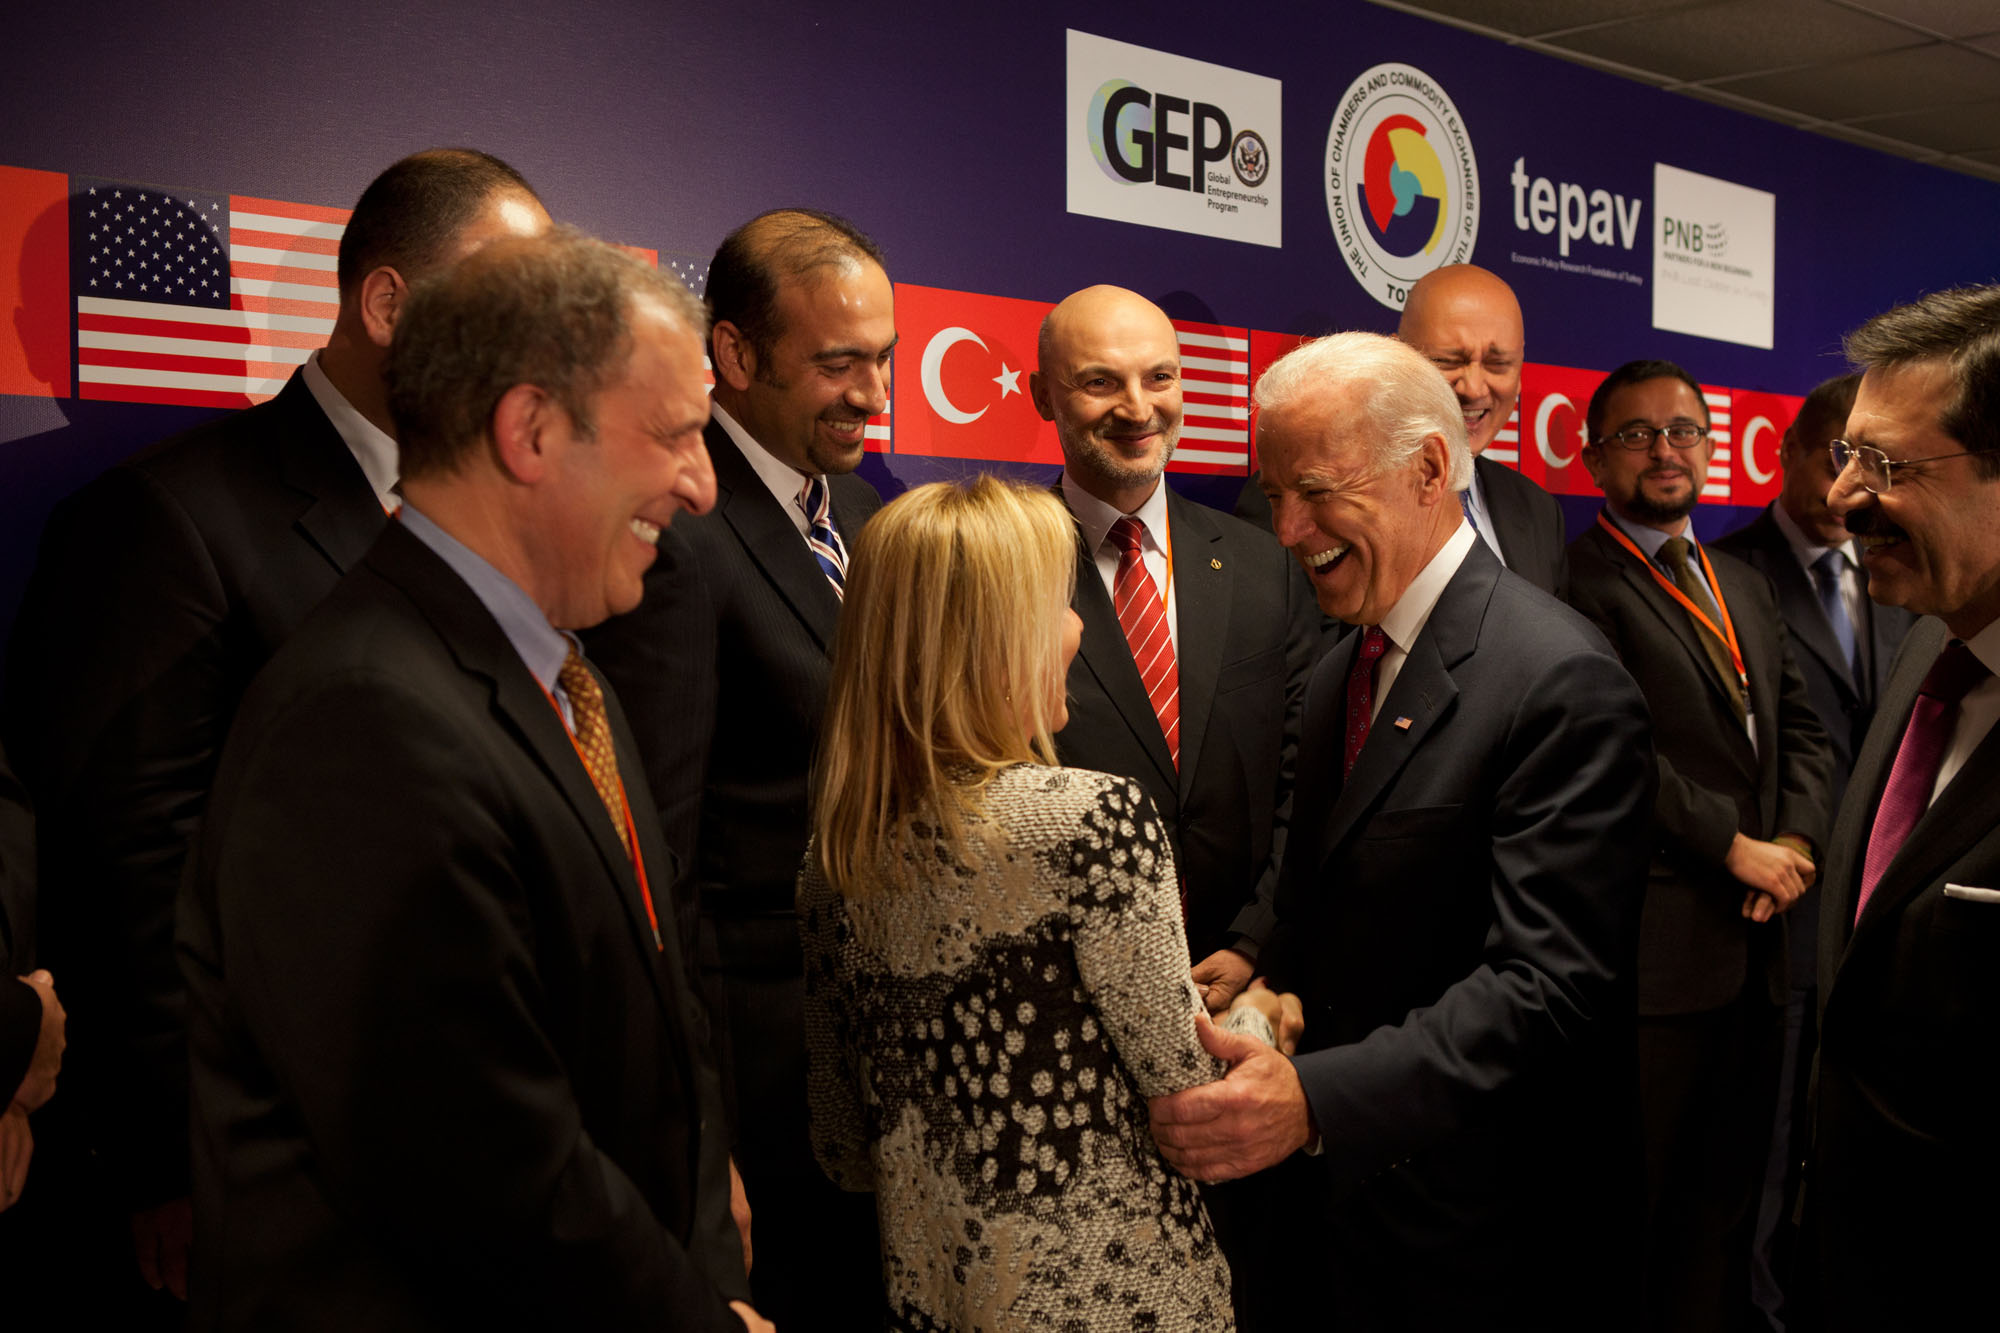 Vice President Joe Biden meets with U.S. and Turkish Business Leaders at the second Global Entrepreneurship Summit in Istanbul